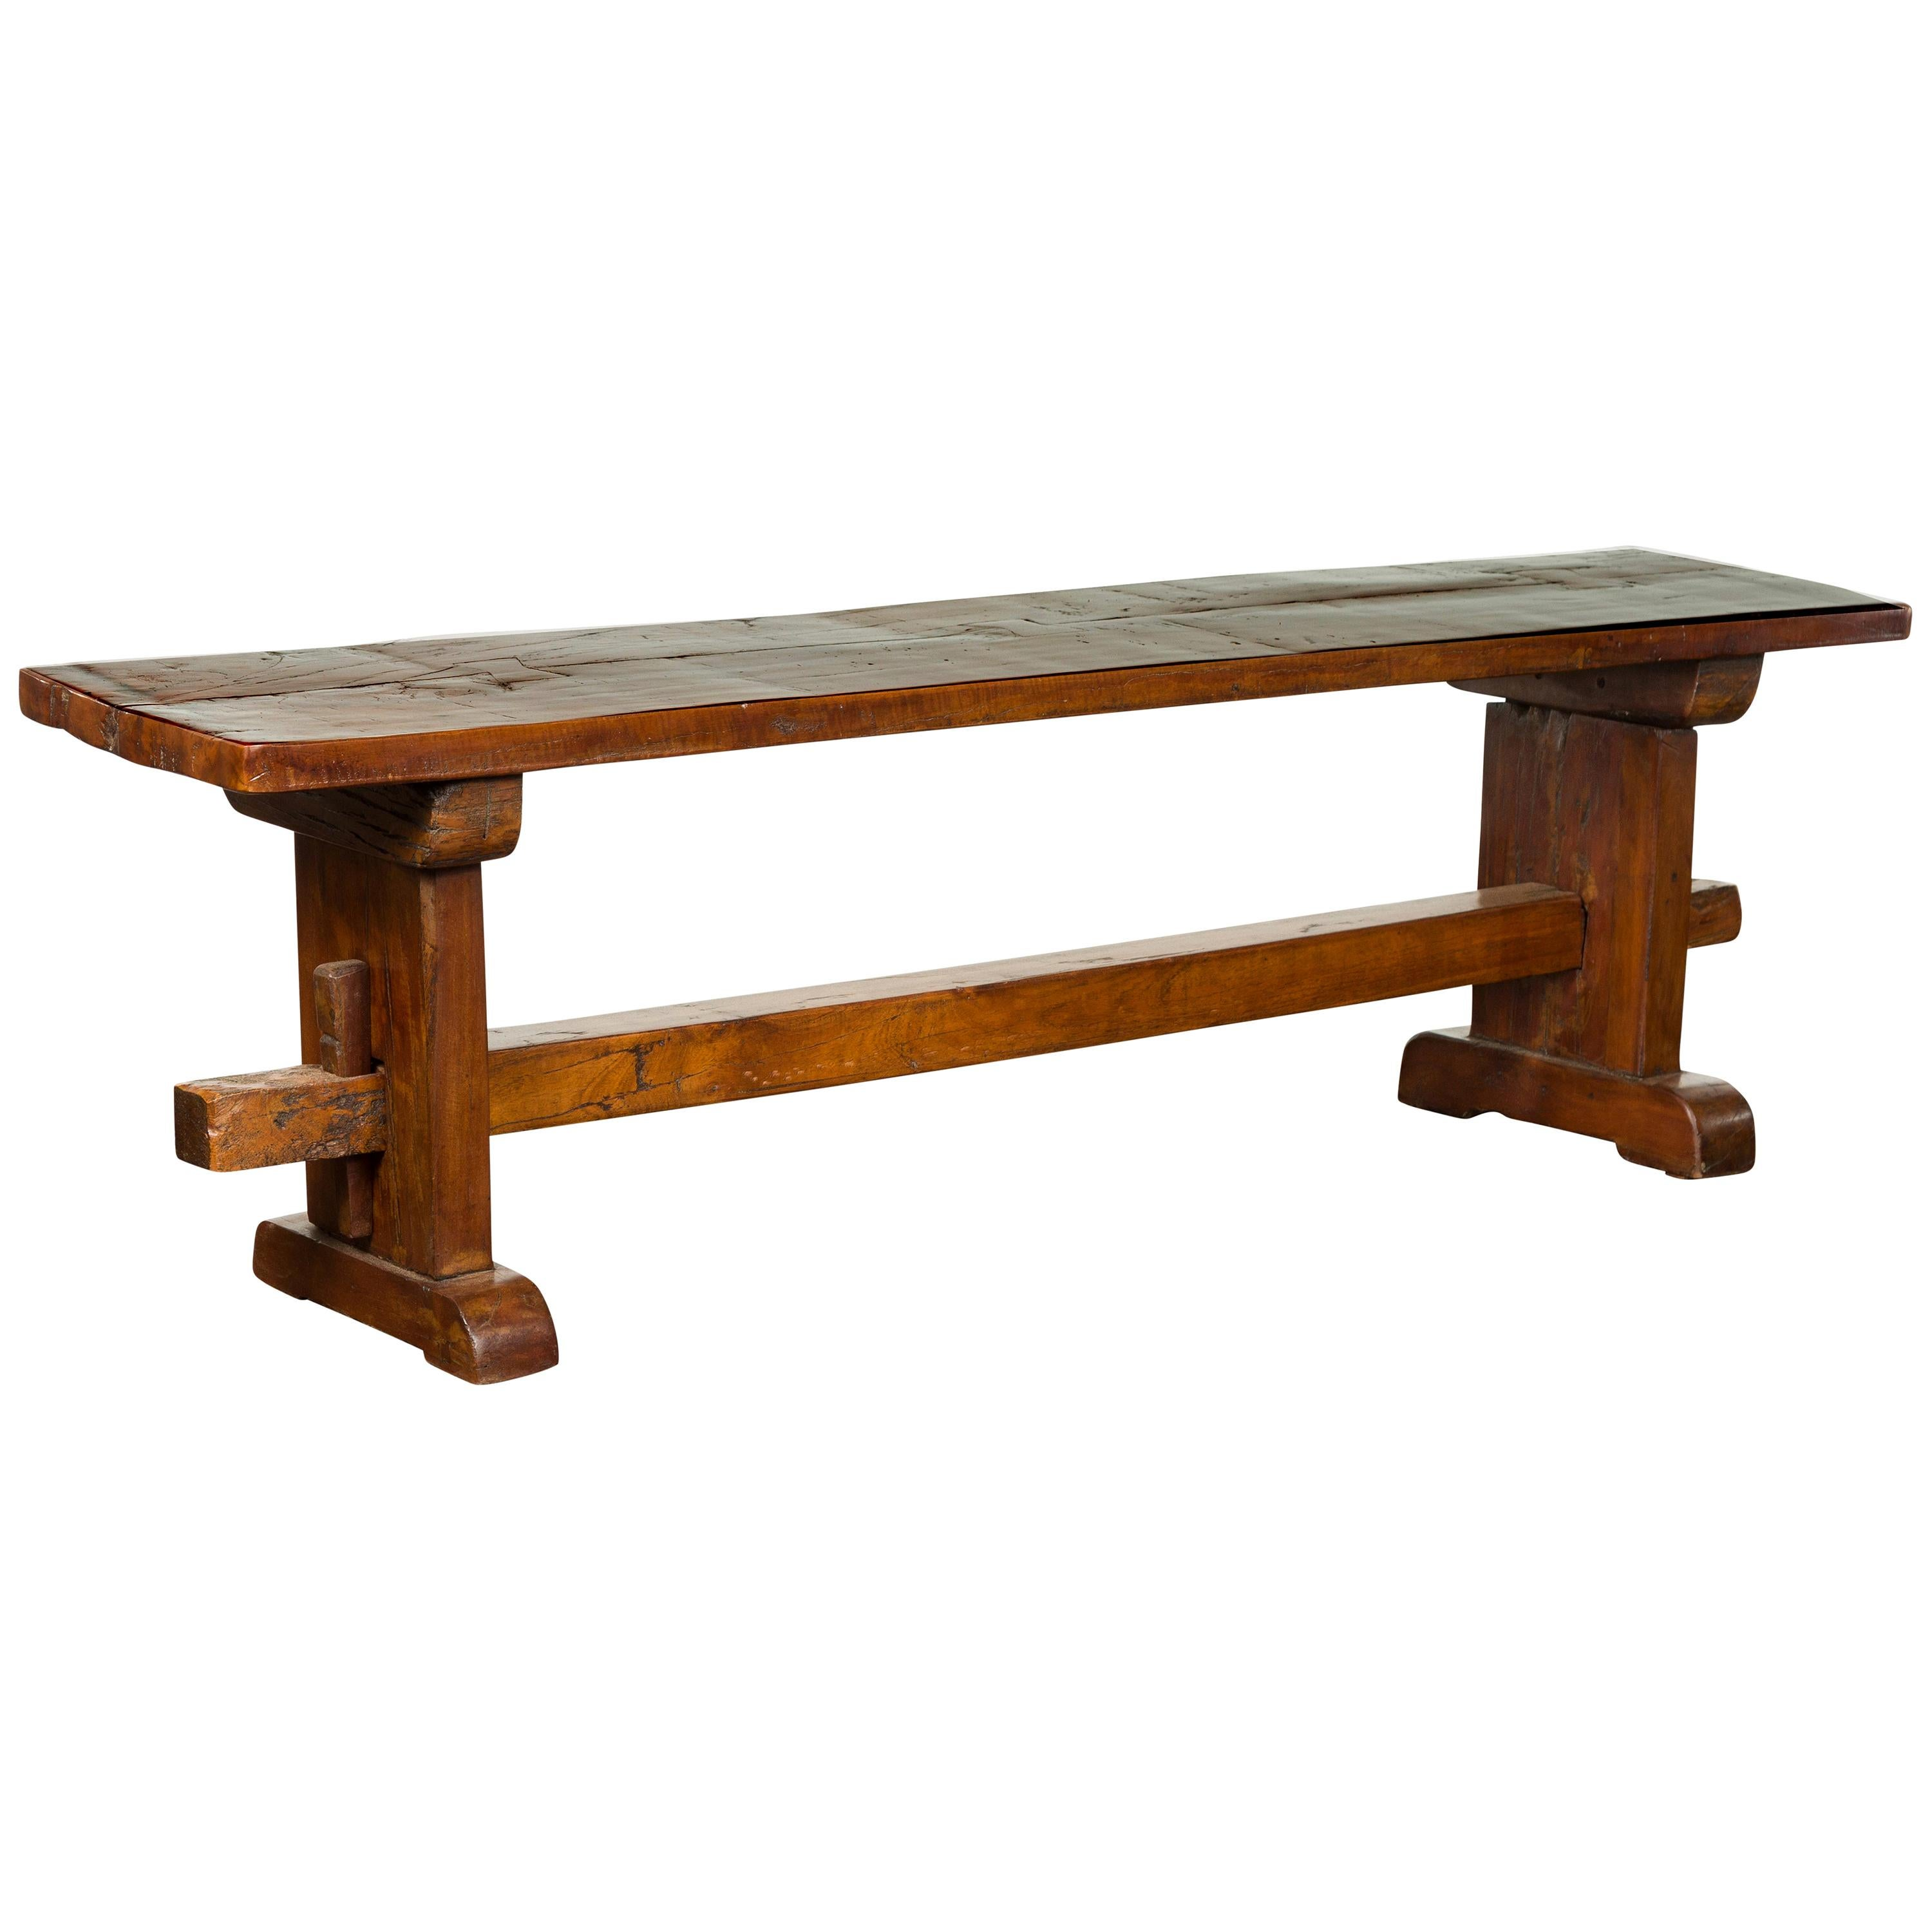 Rustic Italian Walnut Bench with Trestle Base from the Early 19th Century